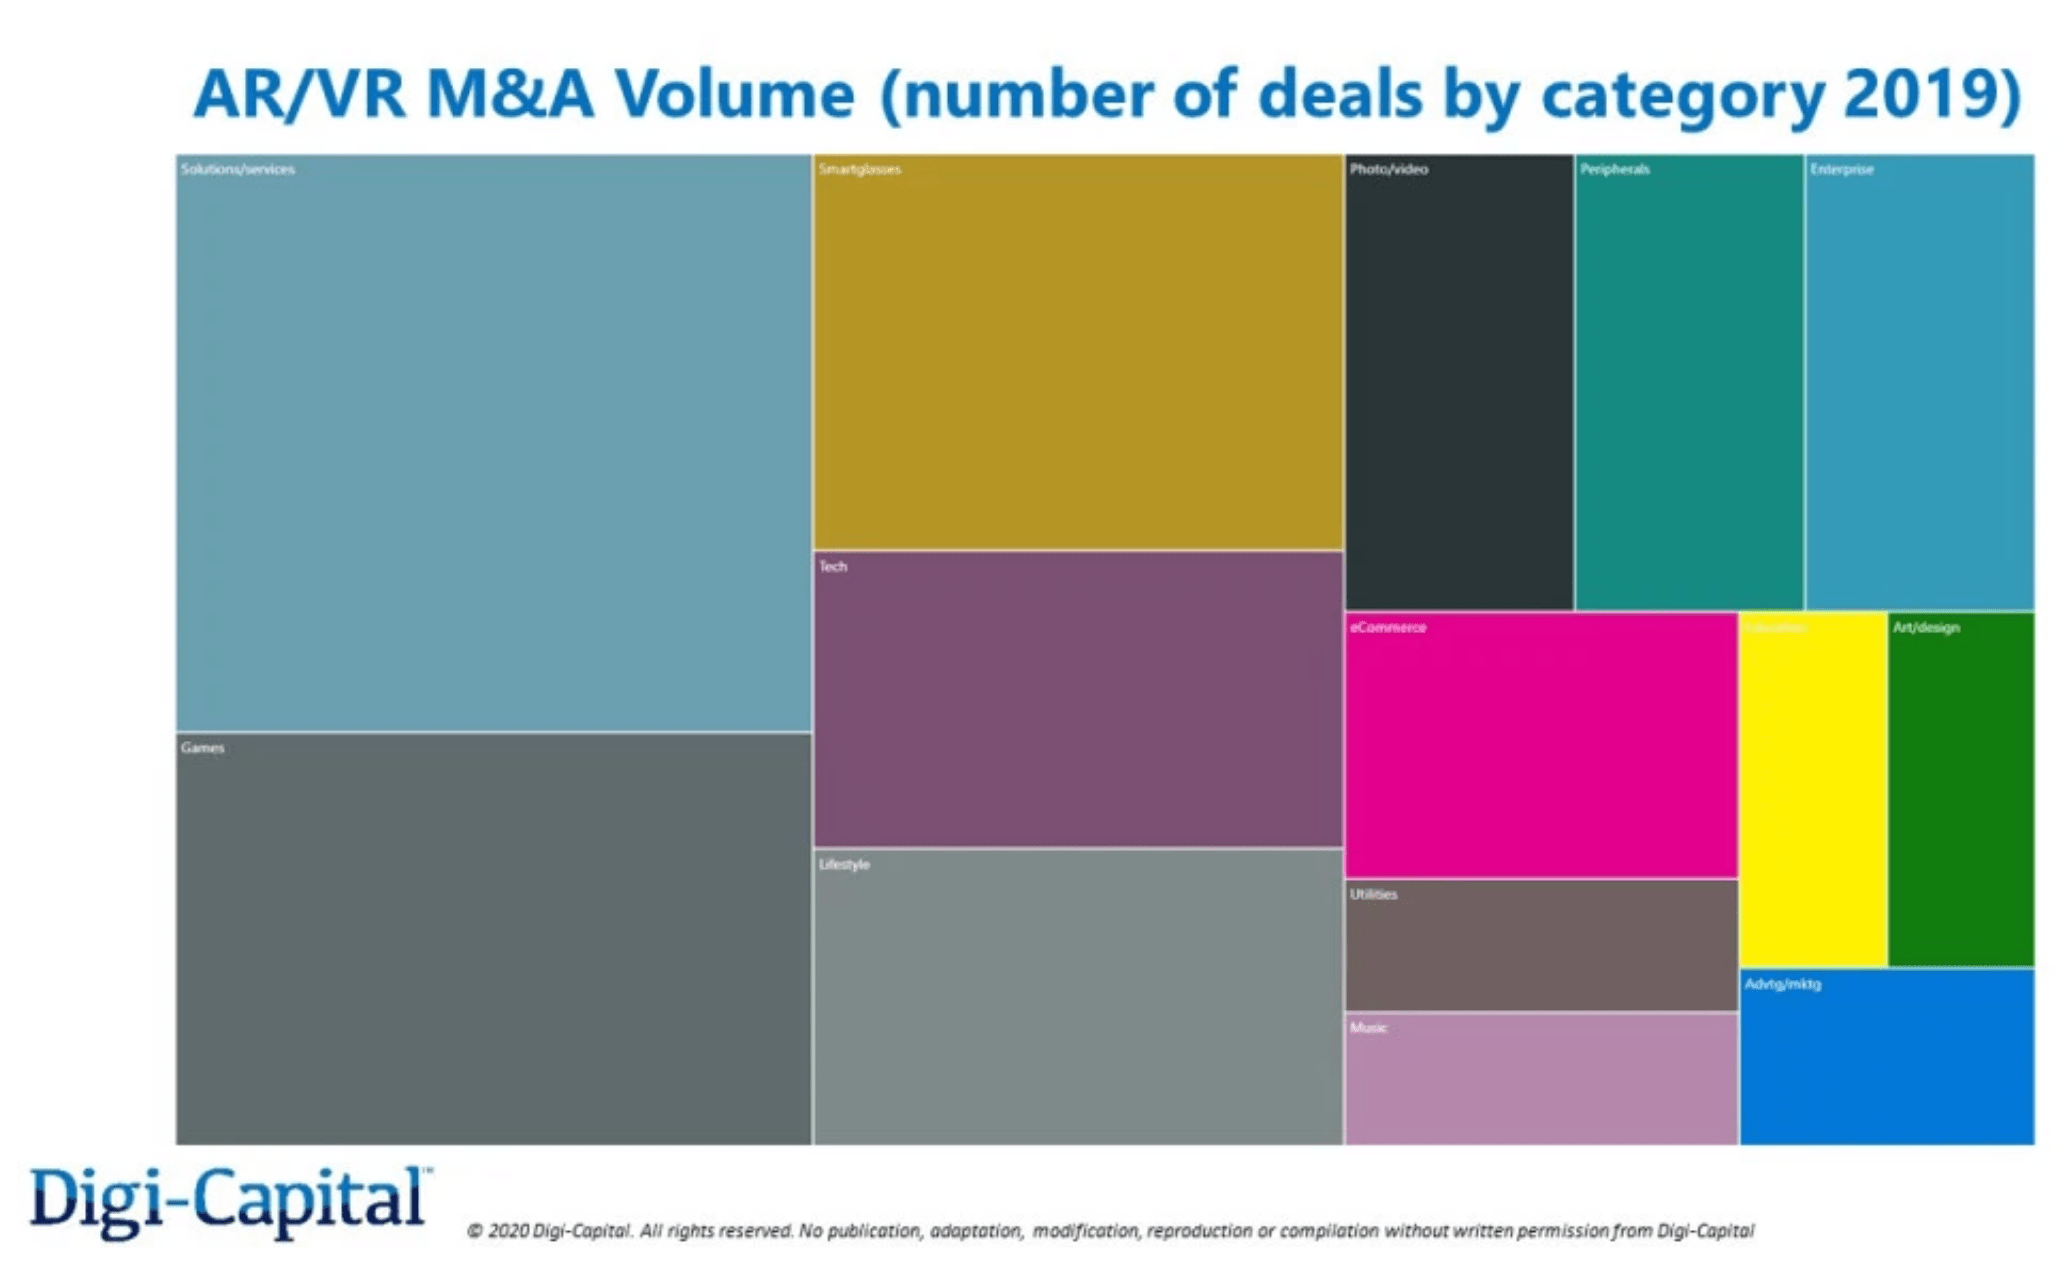 Digi Capital 2019 M&A Volume (Number of Deals by Category)